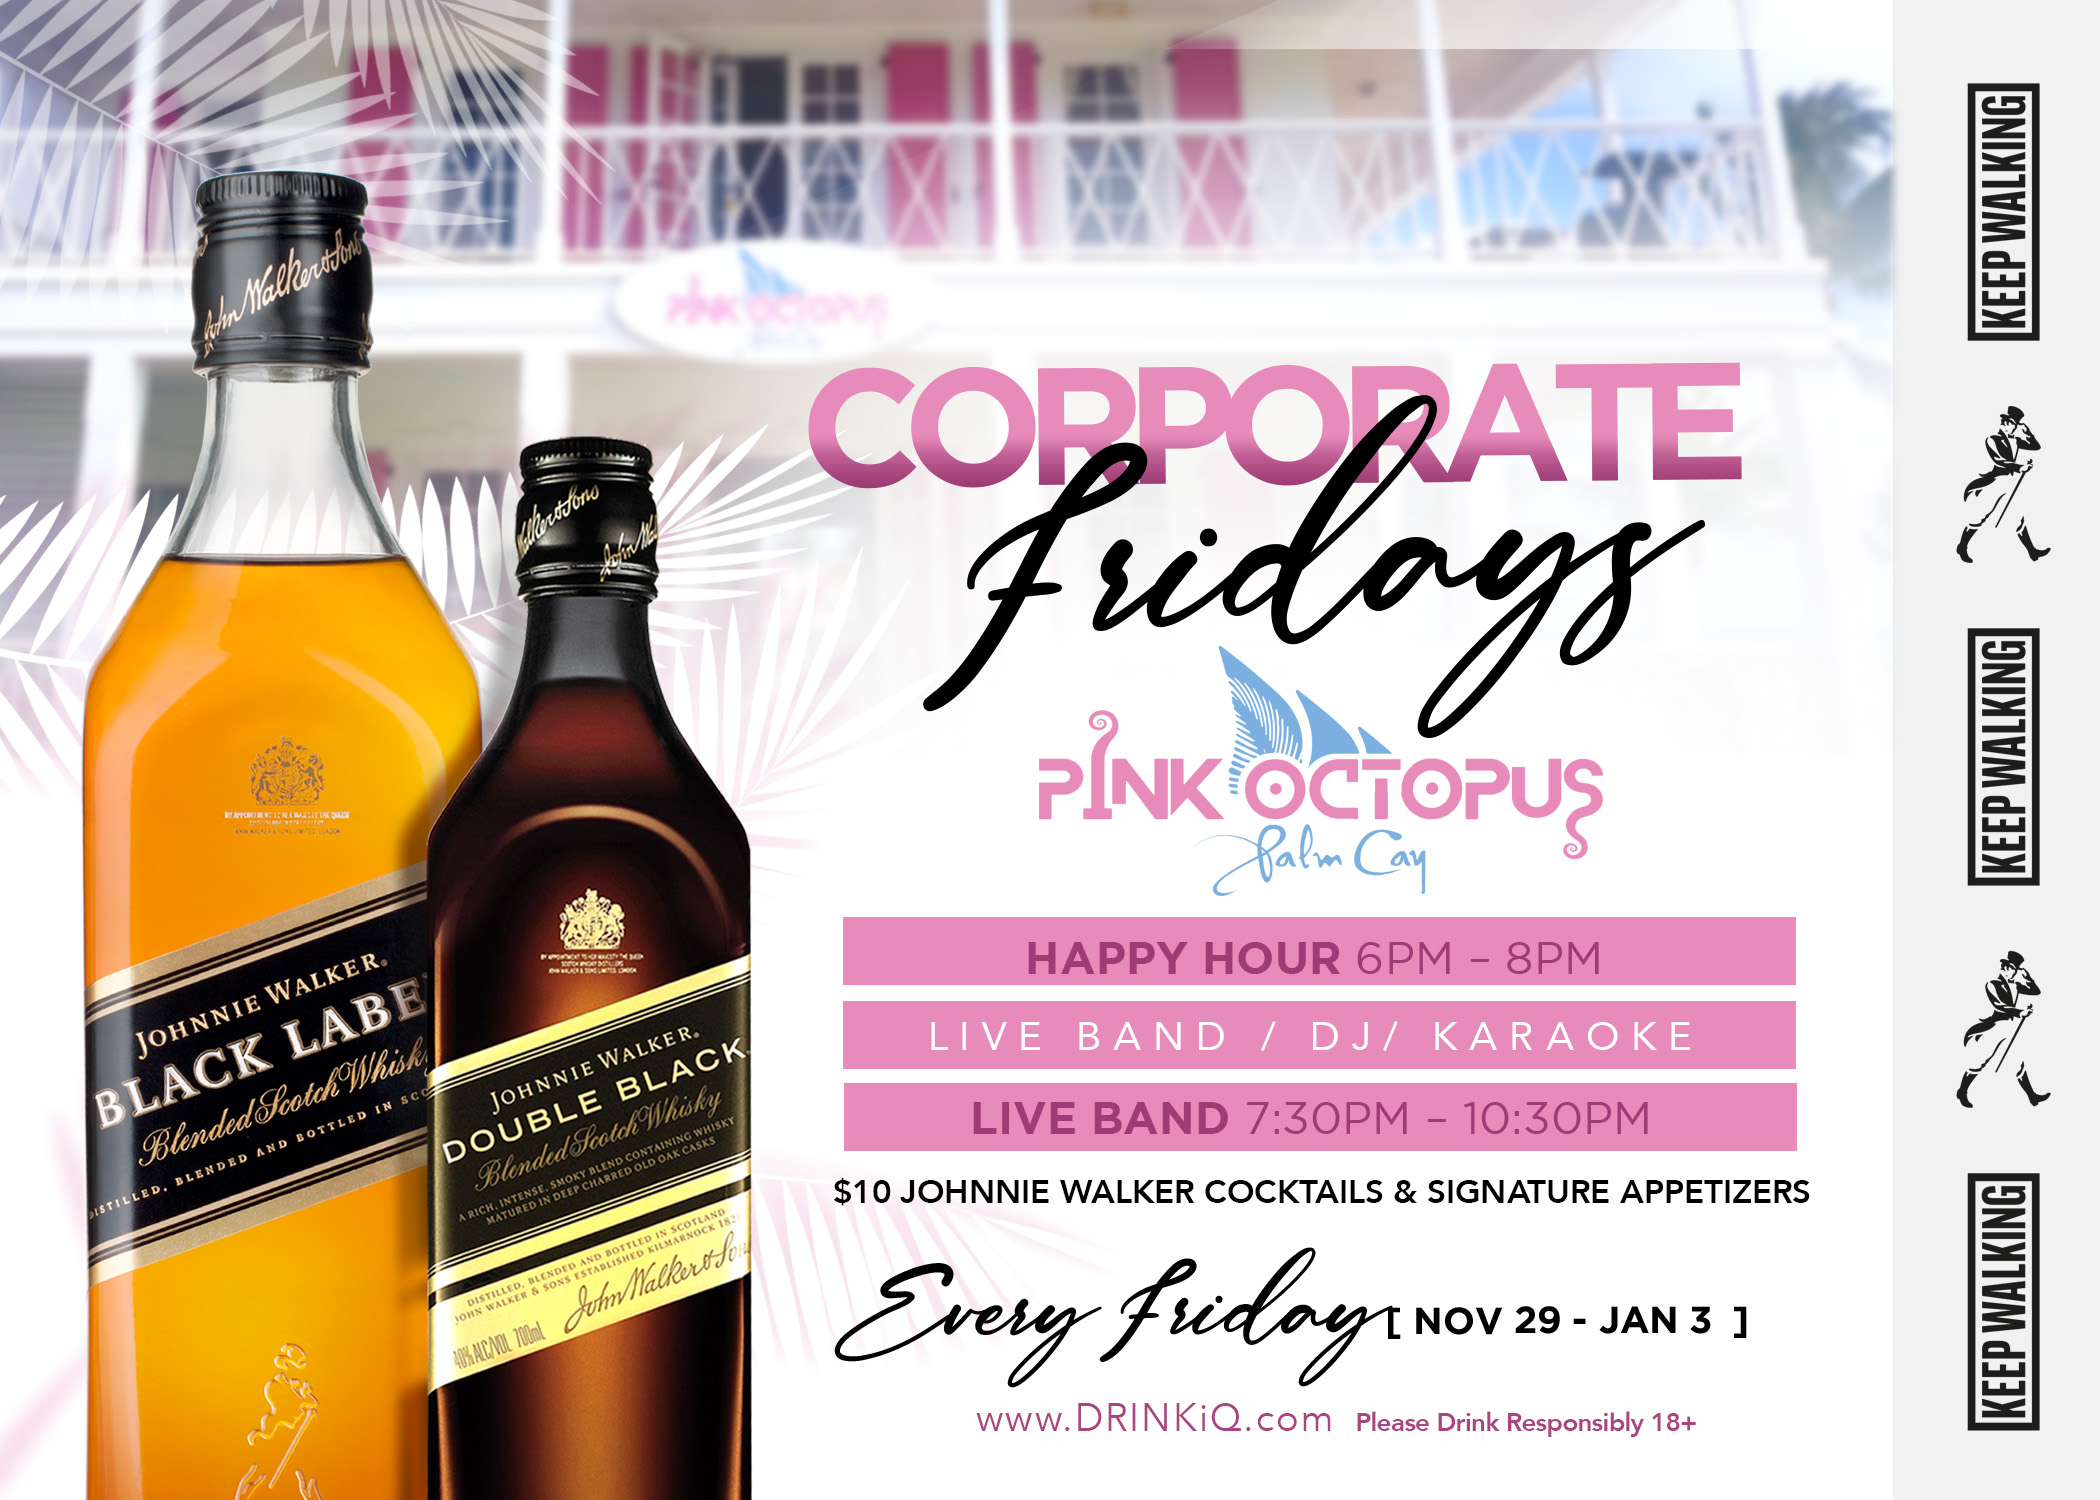 Corporate Friday at Pink Octopus